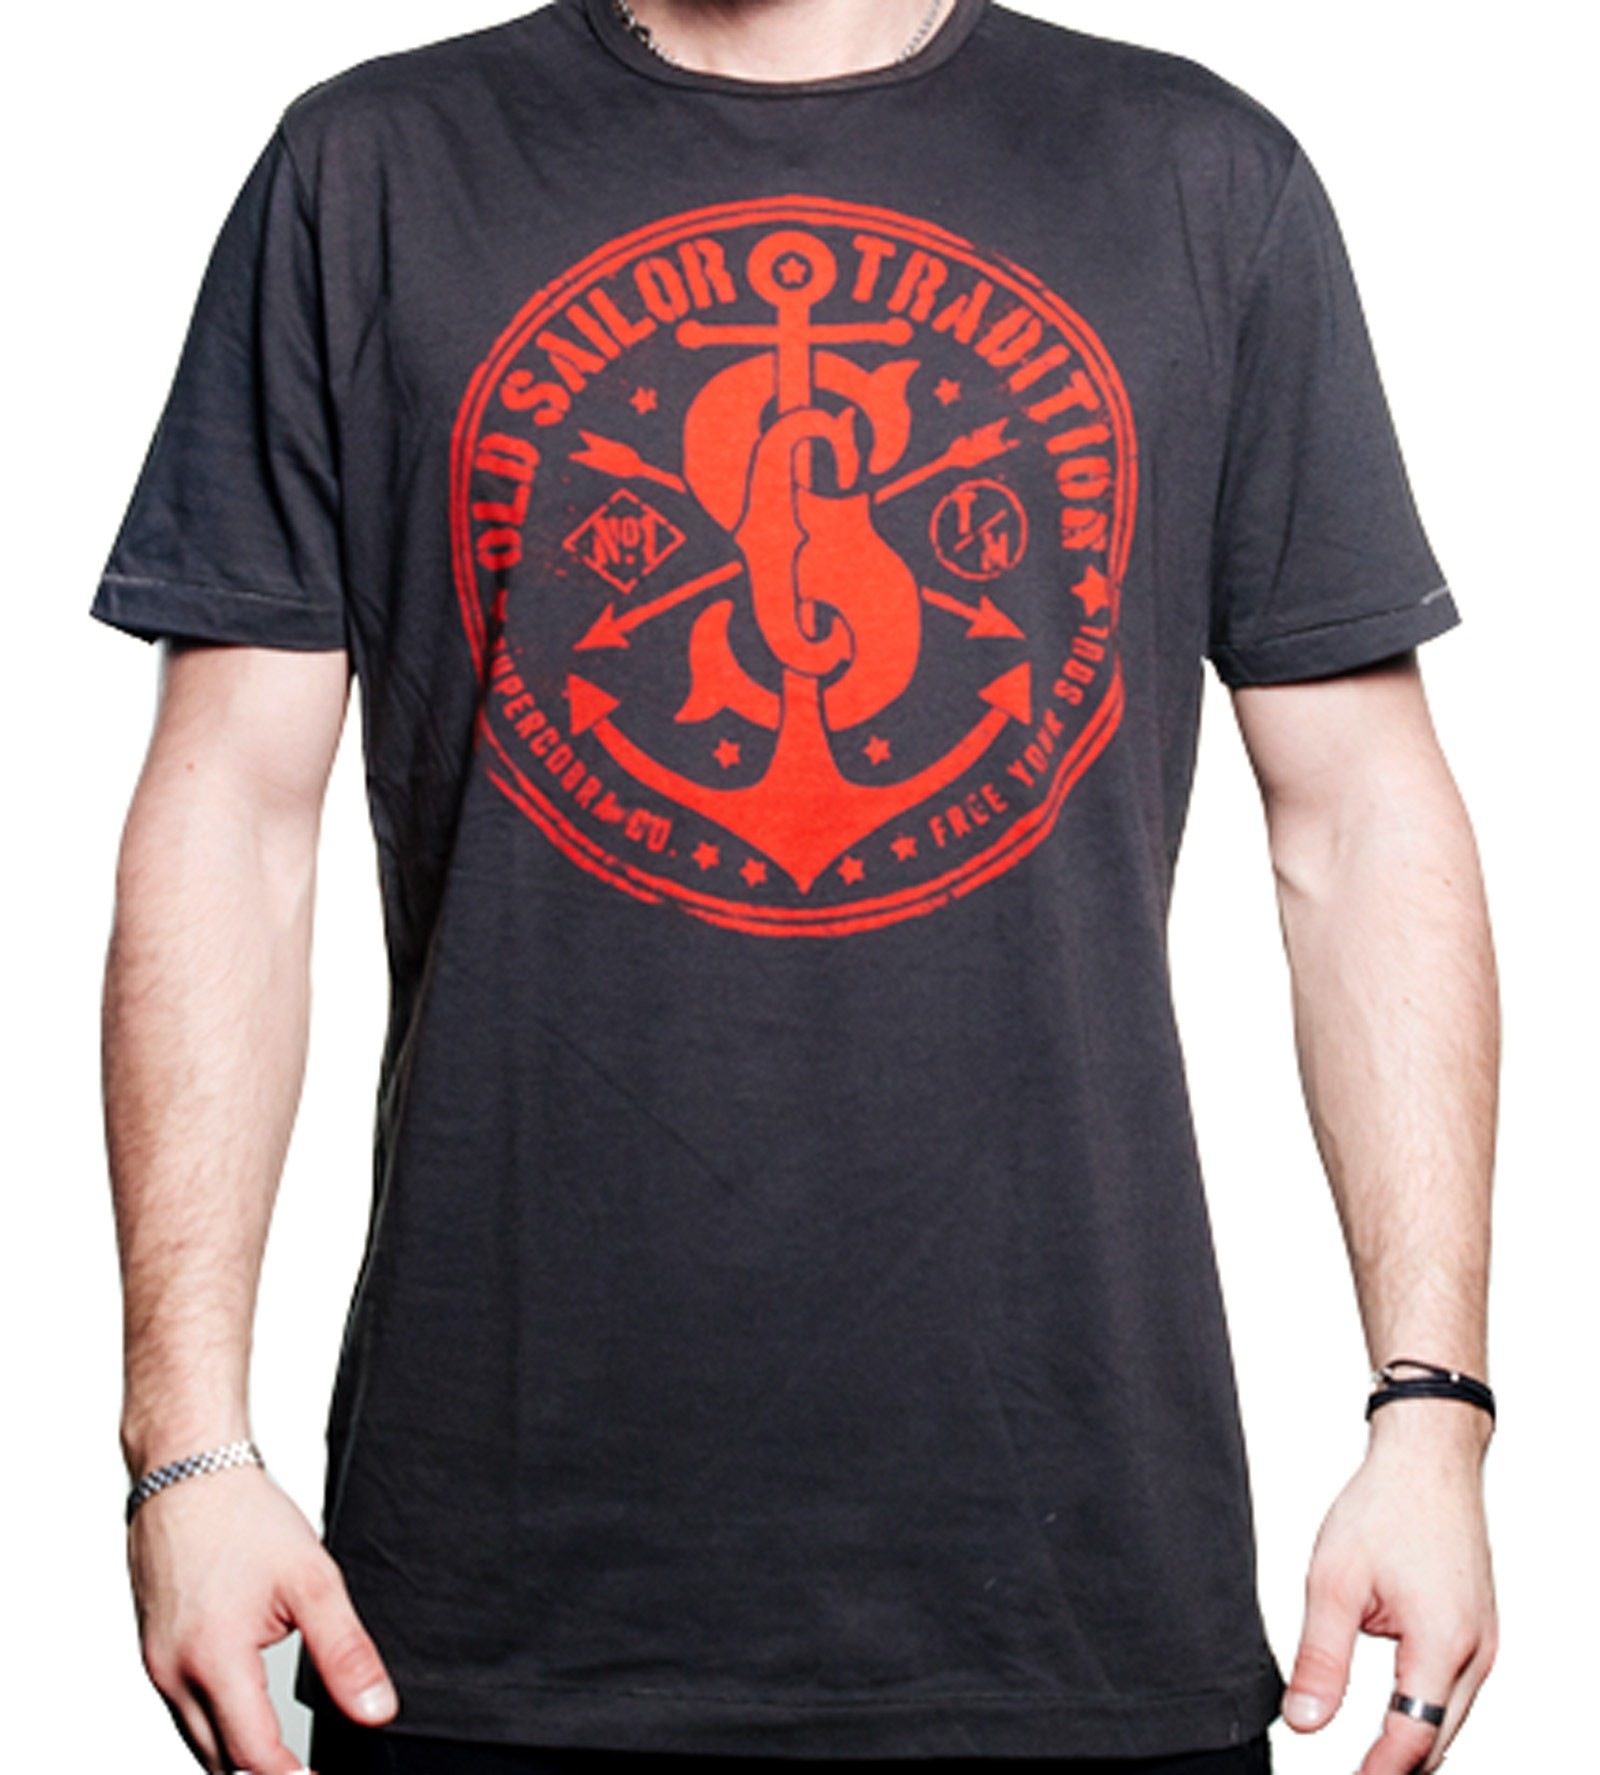 Supercobra Clothing Company - Old Sailor T-Shirt Front